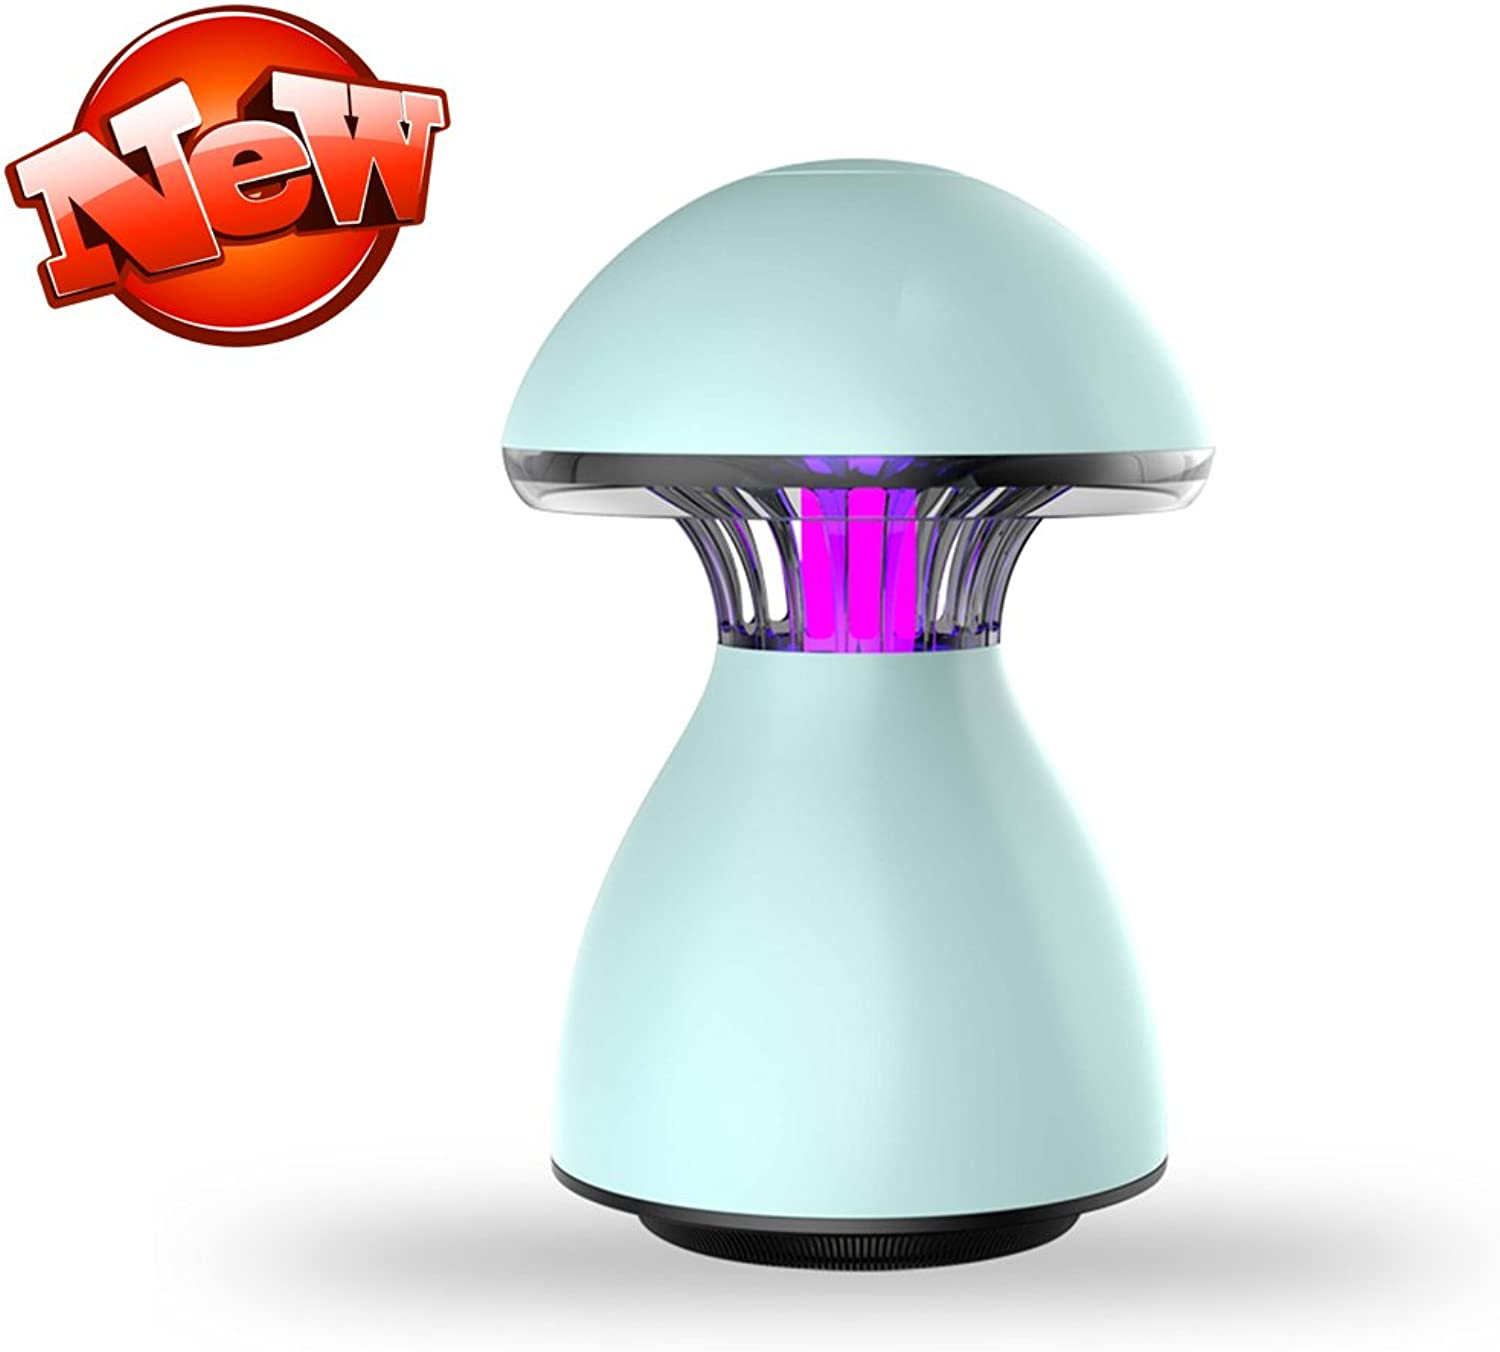 Fly & Mosquito Control MultiFunction Mosquito Repellent Tool Insect Killer lamp Mosquito Killer Household Mute 7.9  7.9  11.8in